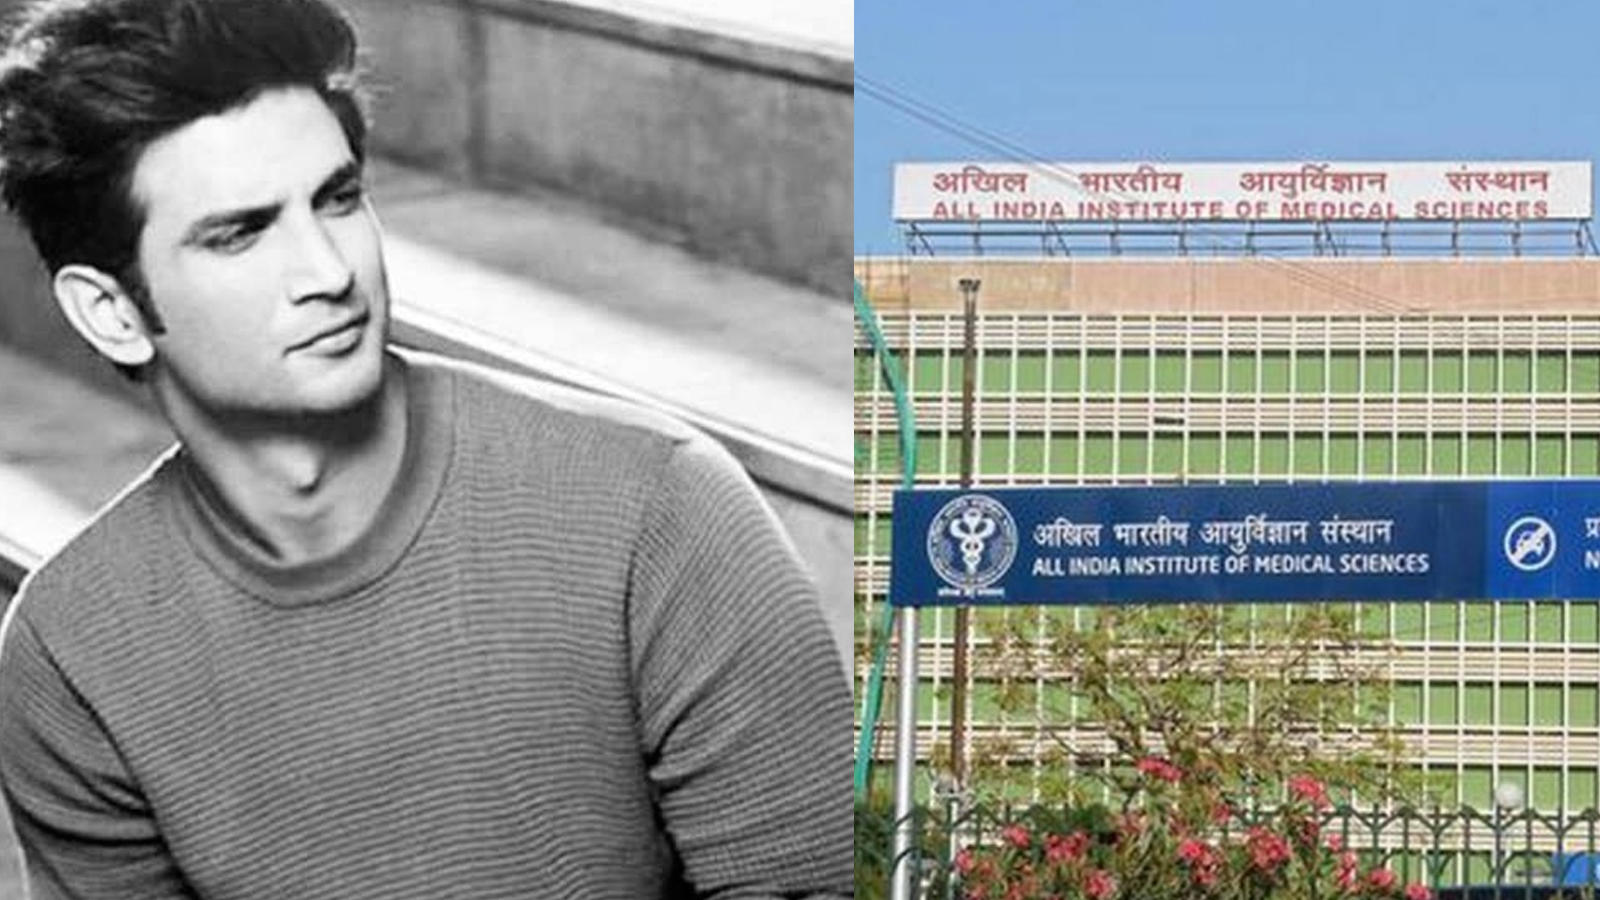 sushant-singh-rajput-death-case-aiims-forensic-report-suggests-the-possibility-of-murder-say-reports